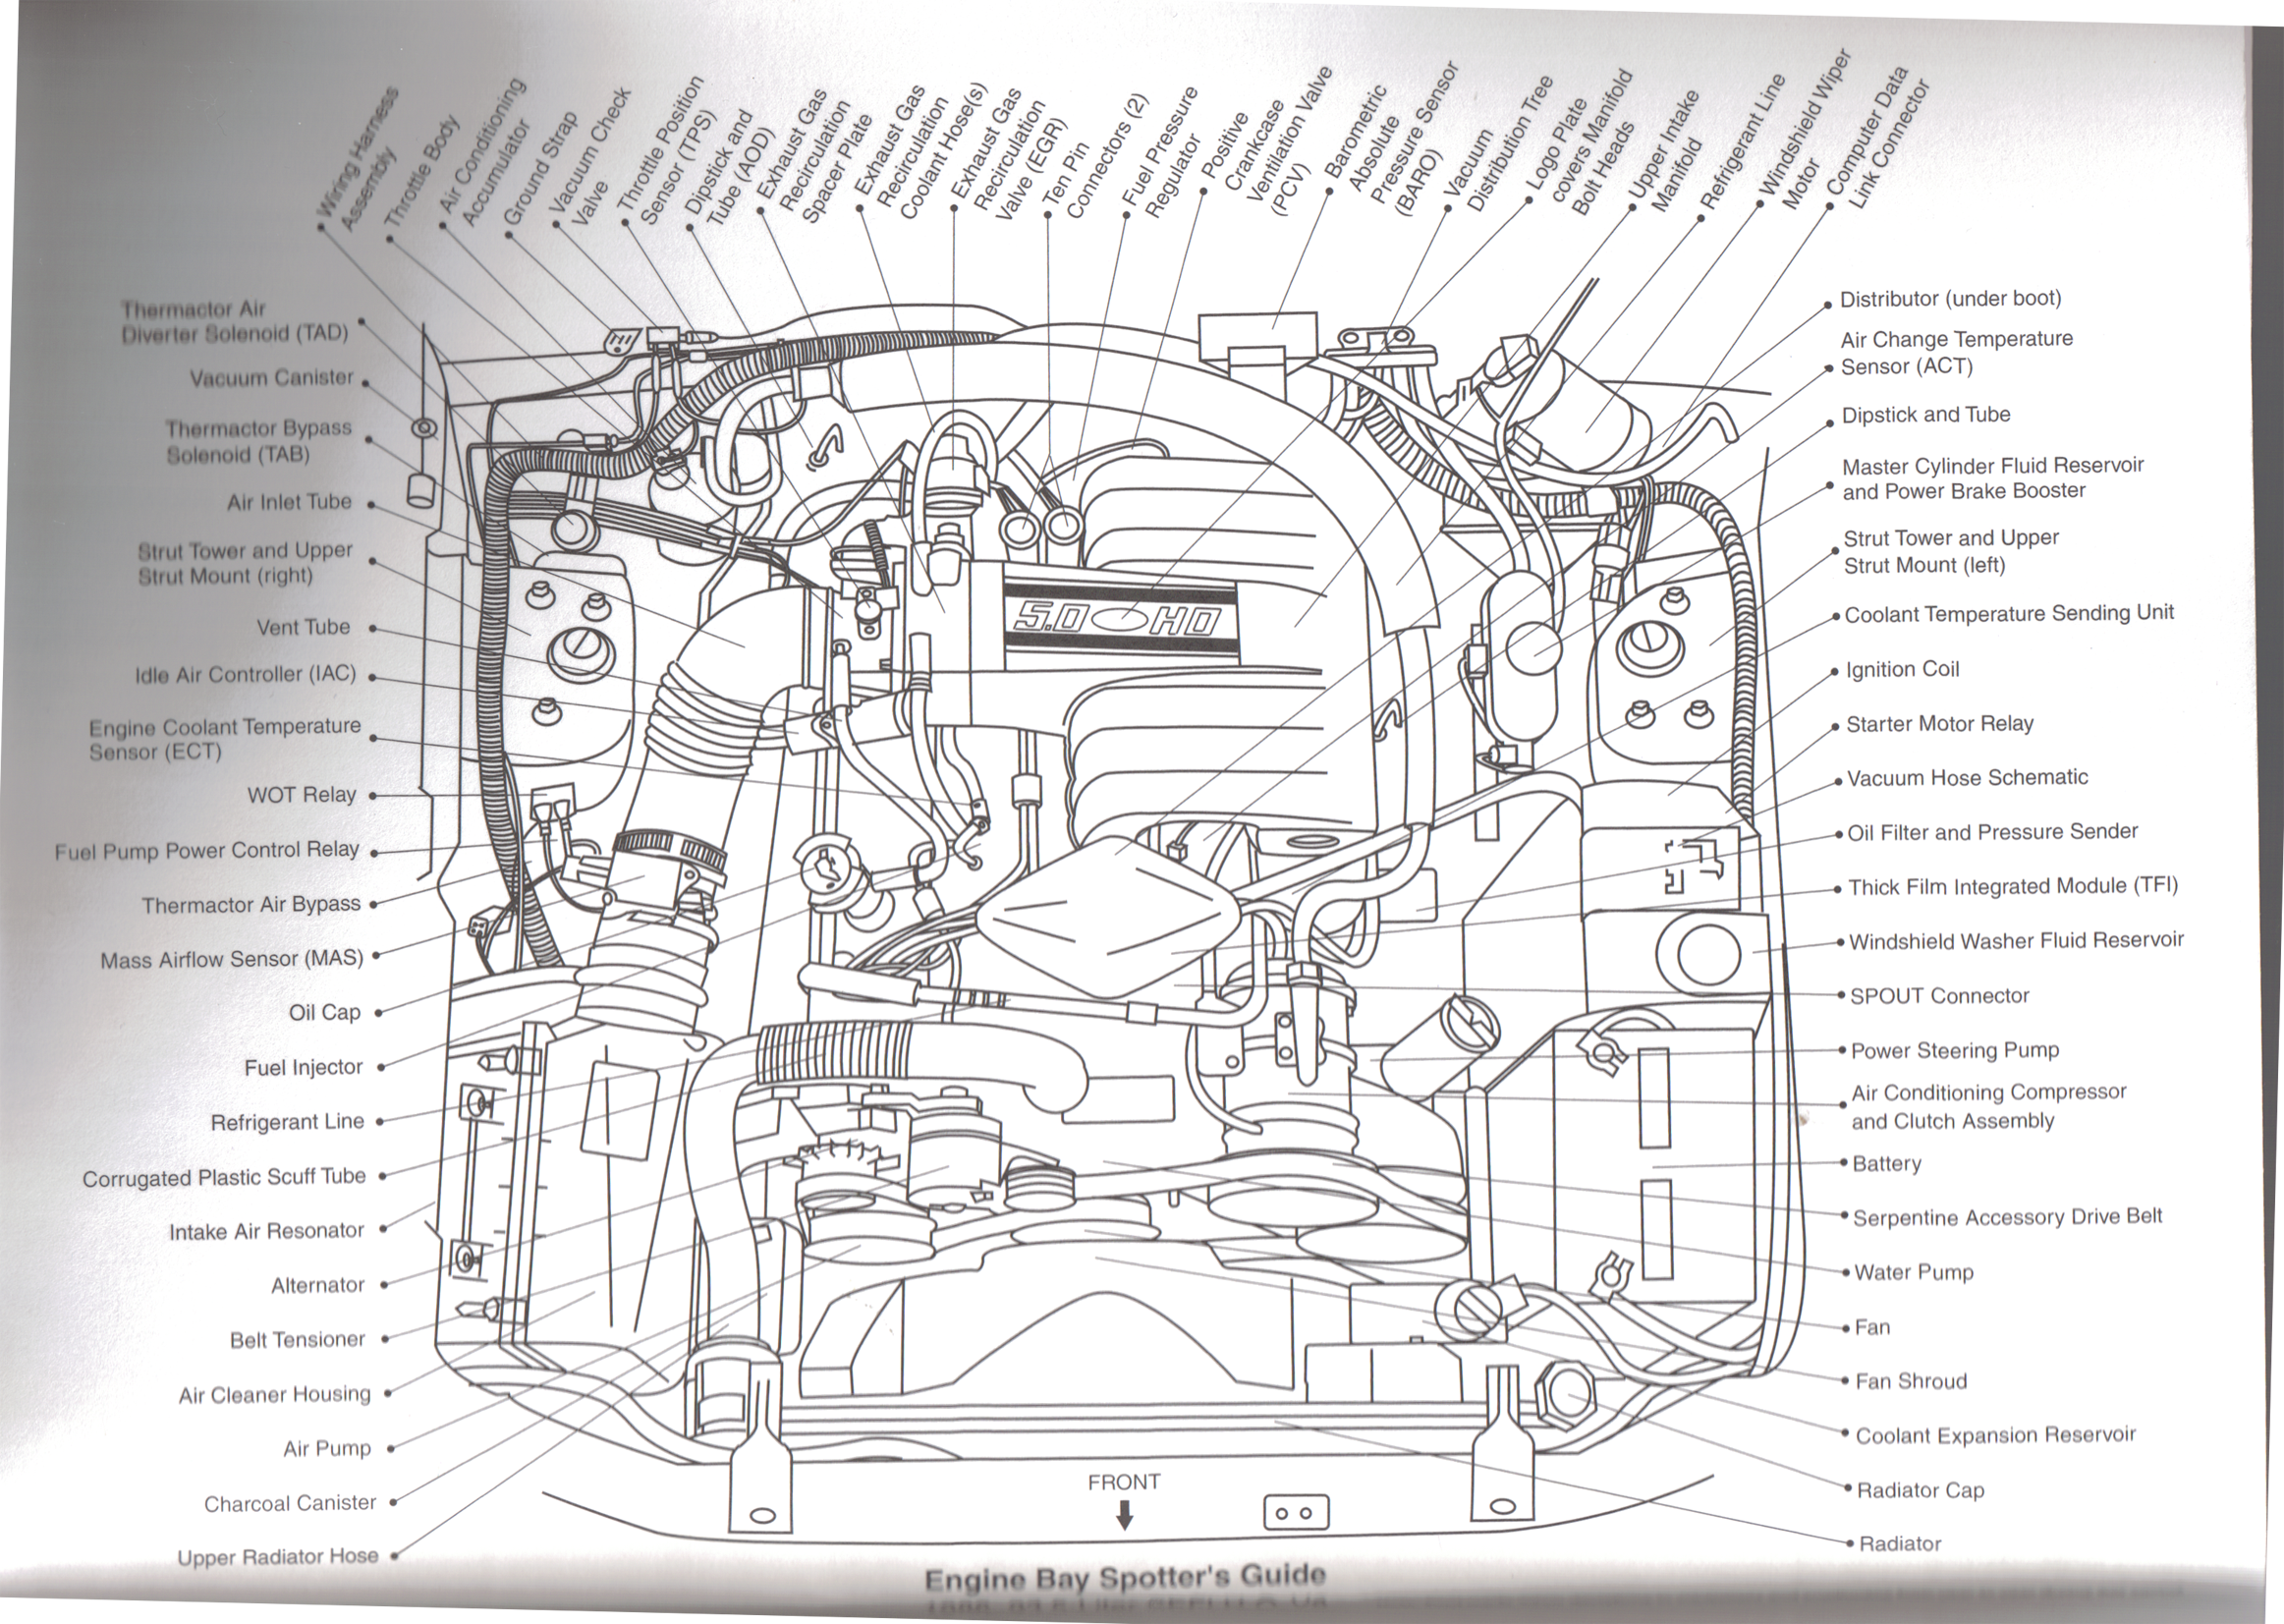 1992 Ford Mustang Diagram List Of Schematic Circuit 1993 Fuse Box Everything You Need To Know About 1979 Foxbody Mustangs Rh Americanmuscle Com Vacuum